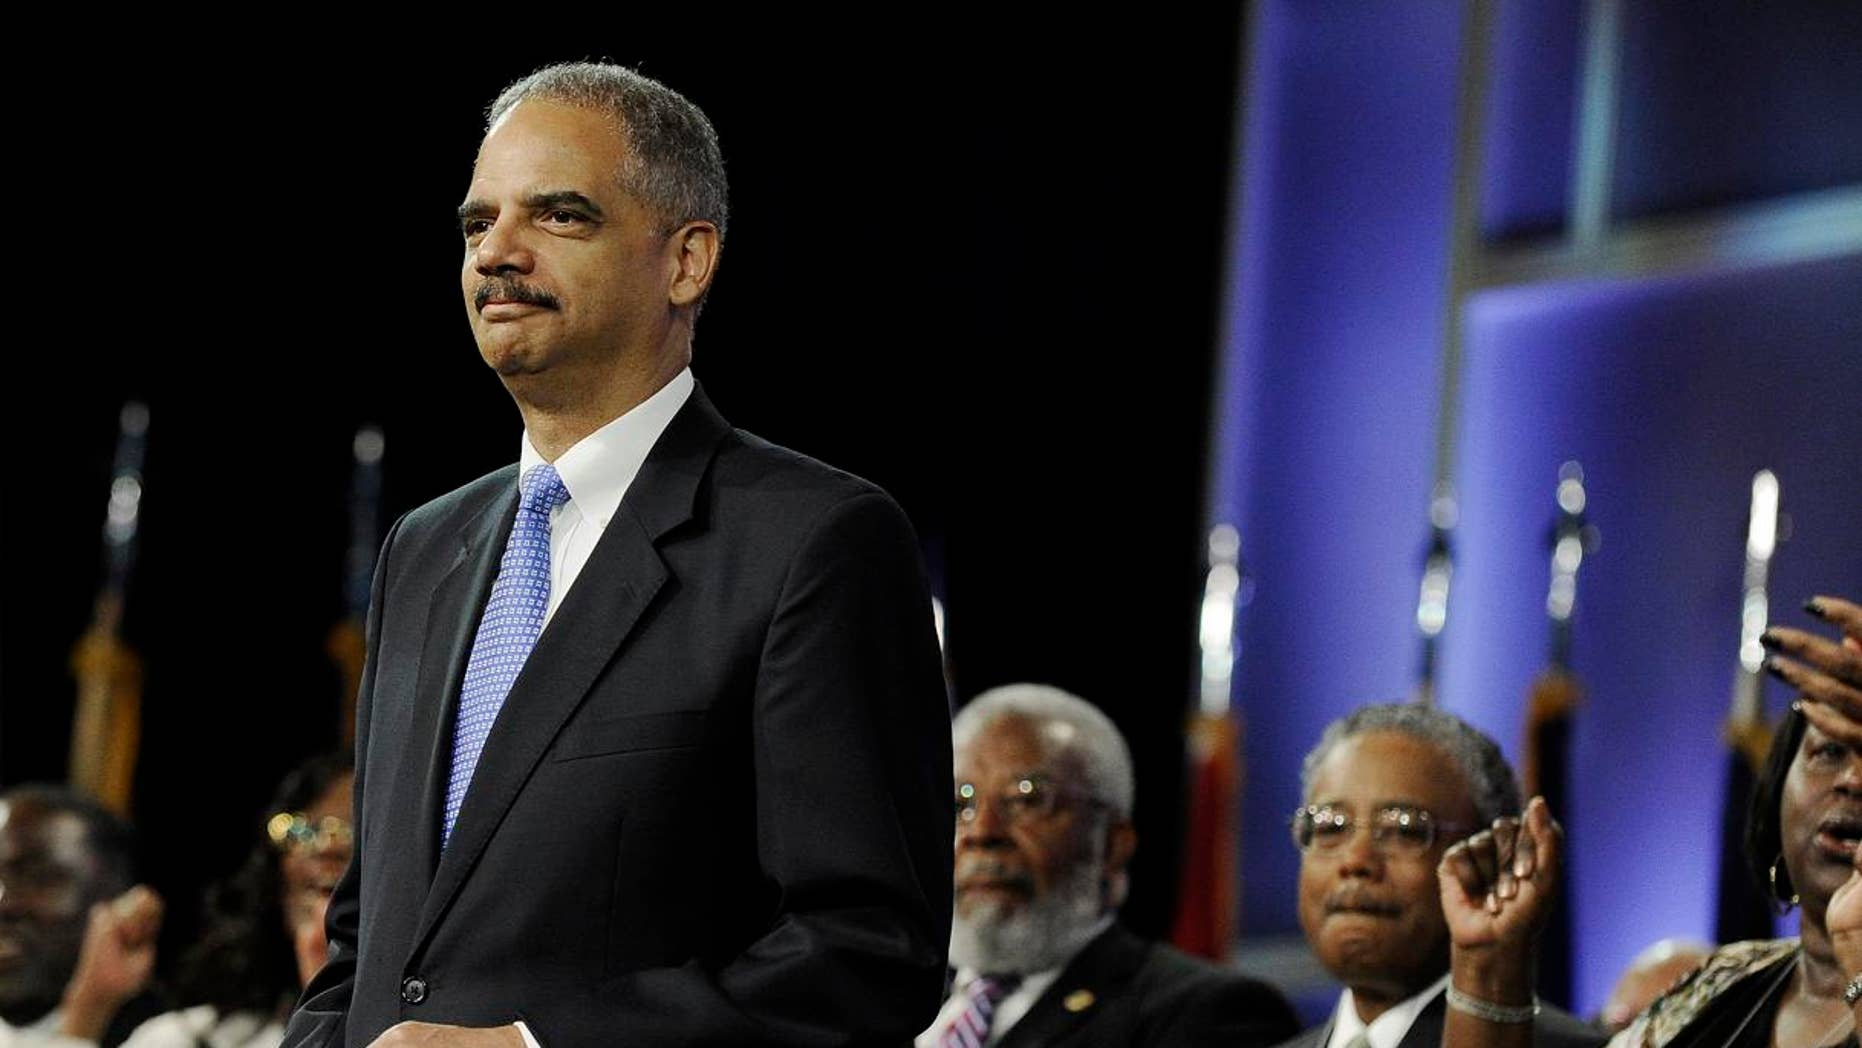 July 10: Attorney General Eric Holder is welcomed at the NAACP annual convention in Houston.